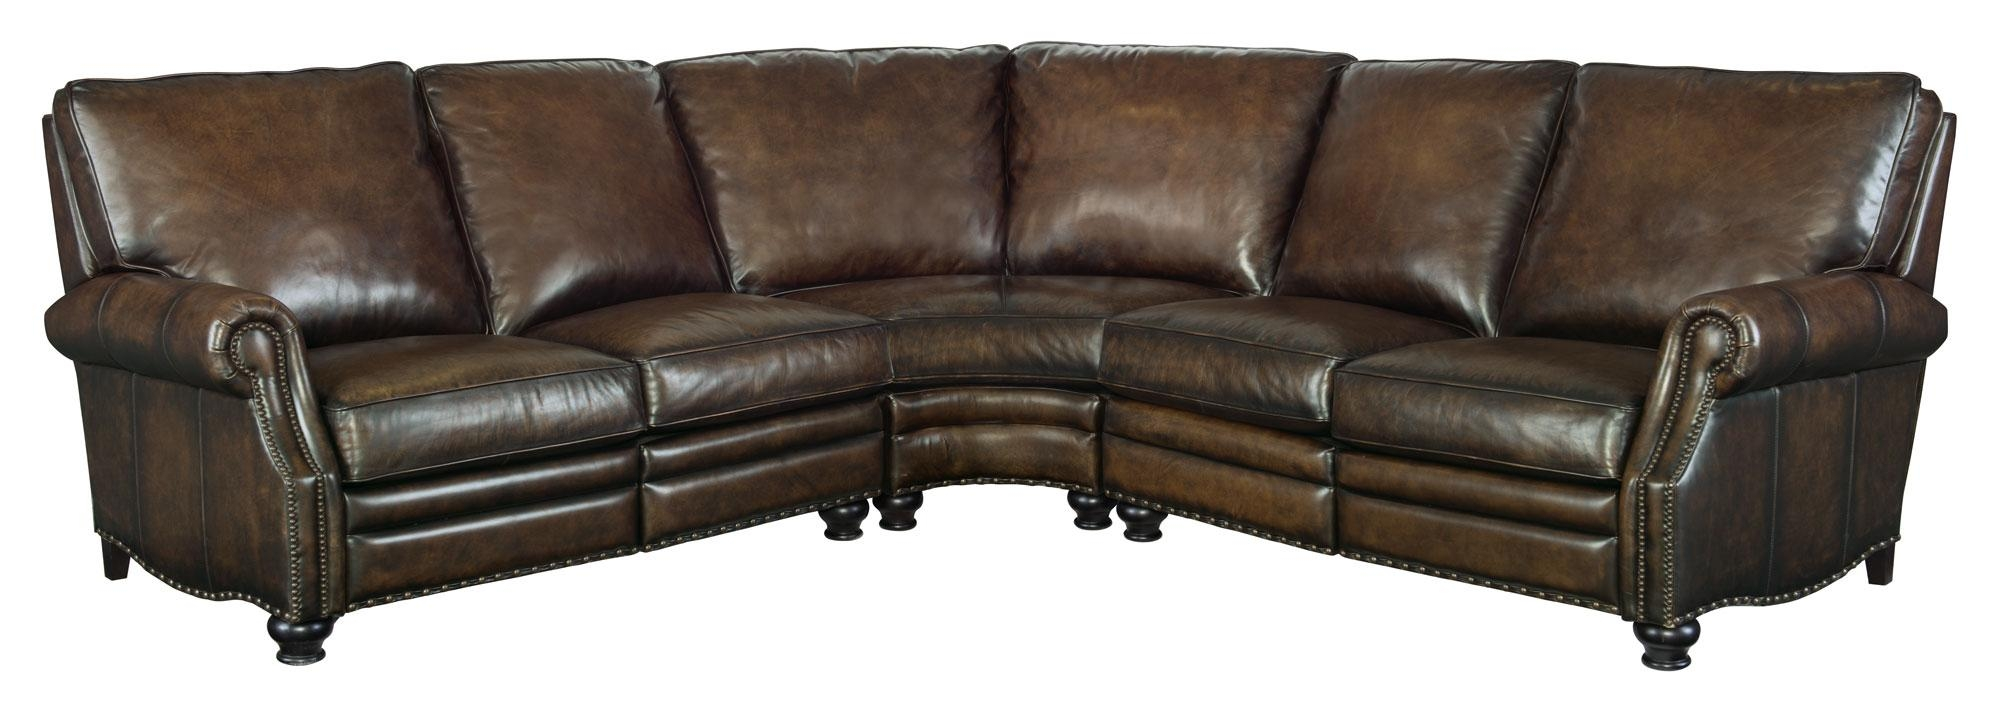 Power Motion Sectional Sofa | Bernhardt Pertaining To Motion Sectional Sofas (View 18 of 20)